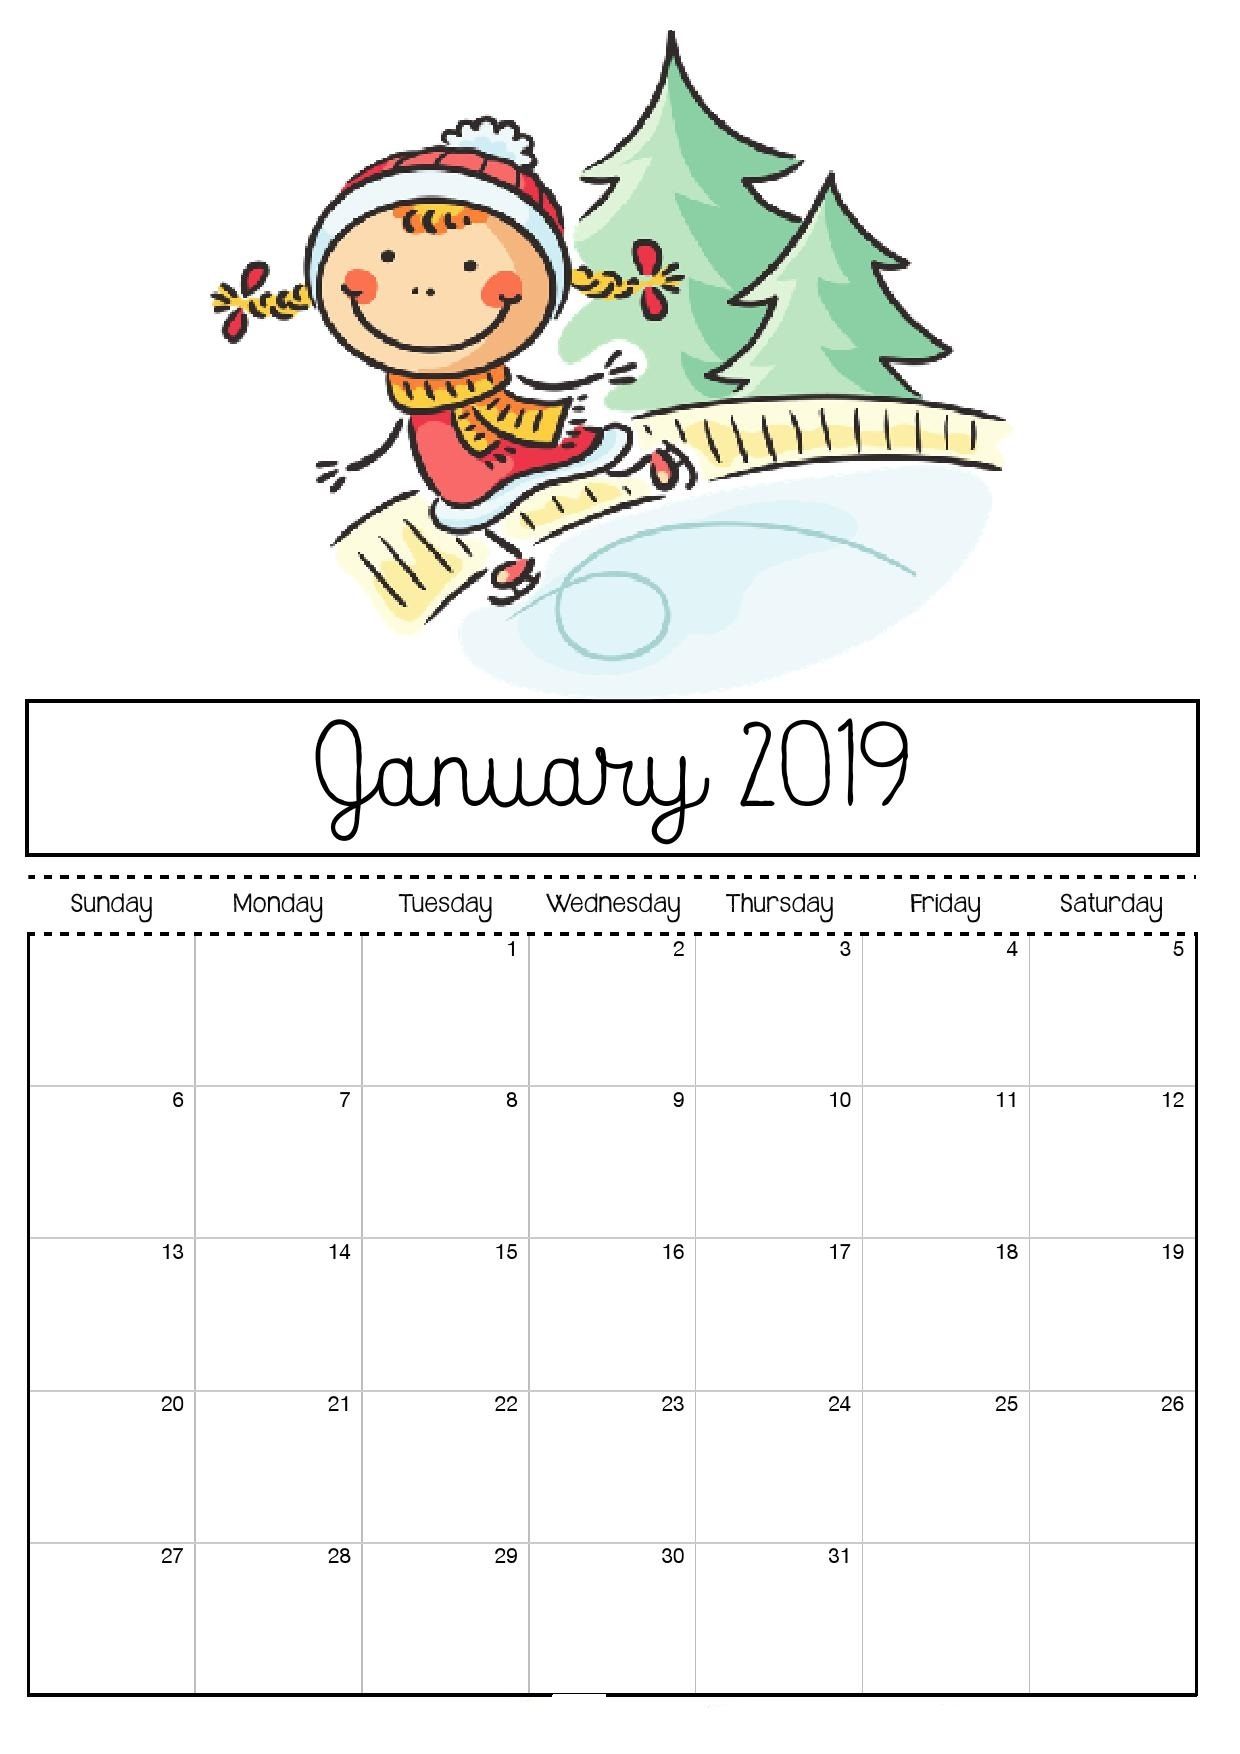 january month 2019 holiday calendar 2019 calendar templates printable::January 2019 Calendar USA